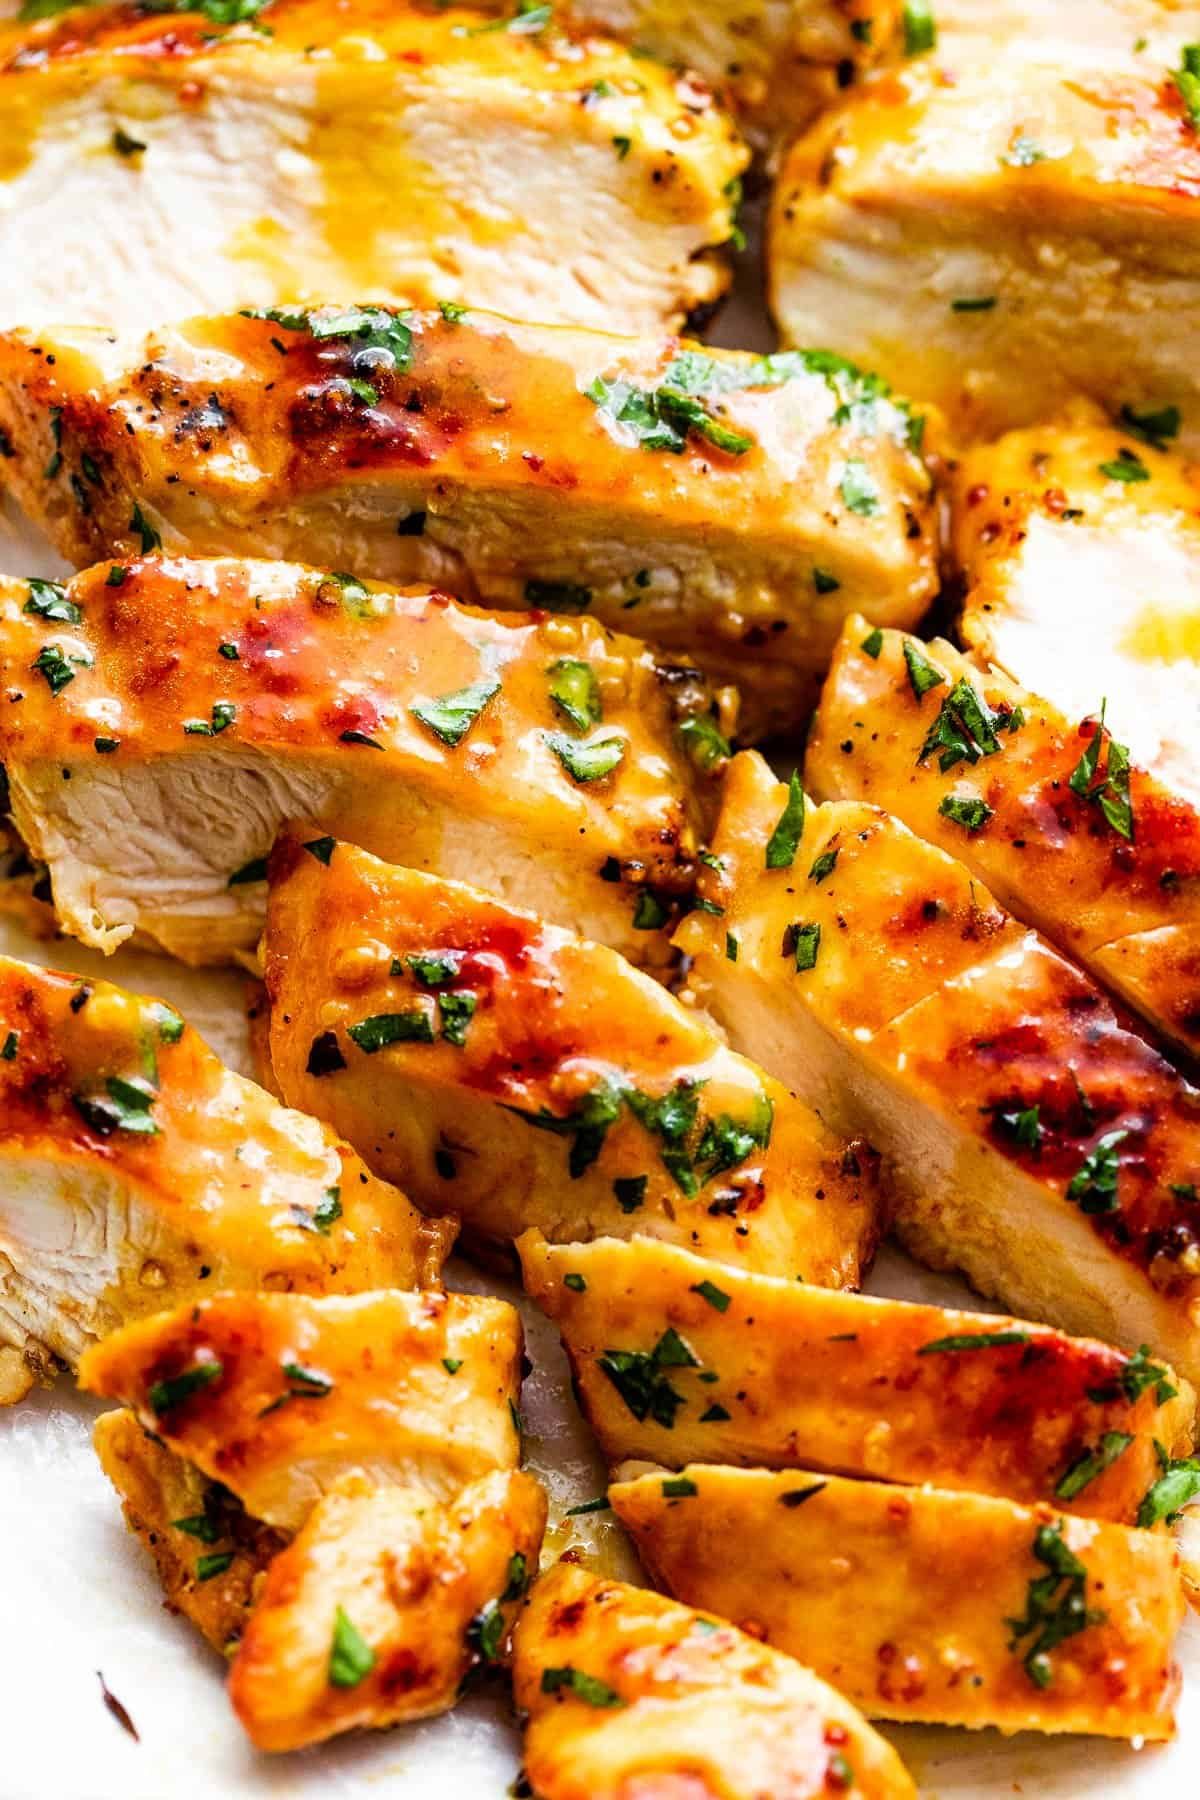 close up photo of grilled honey mustard chicken breasts cut into thin slices